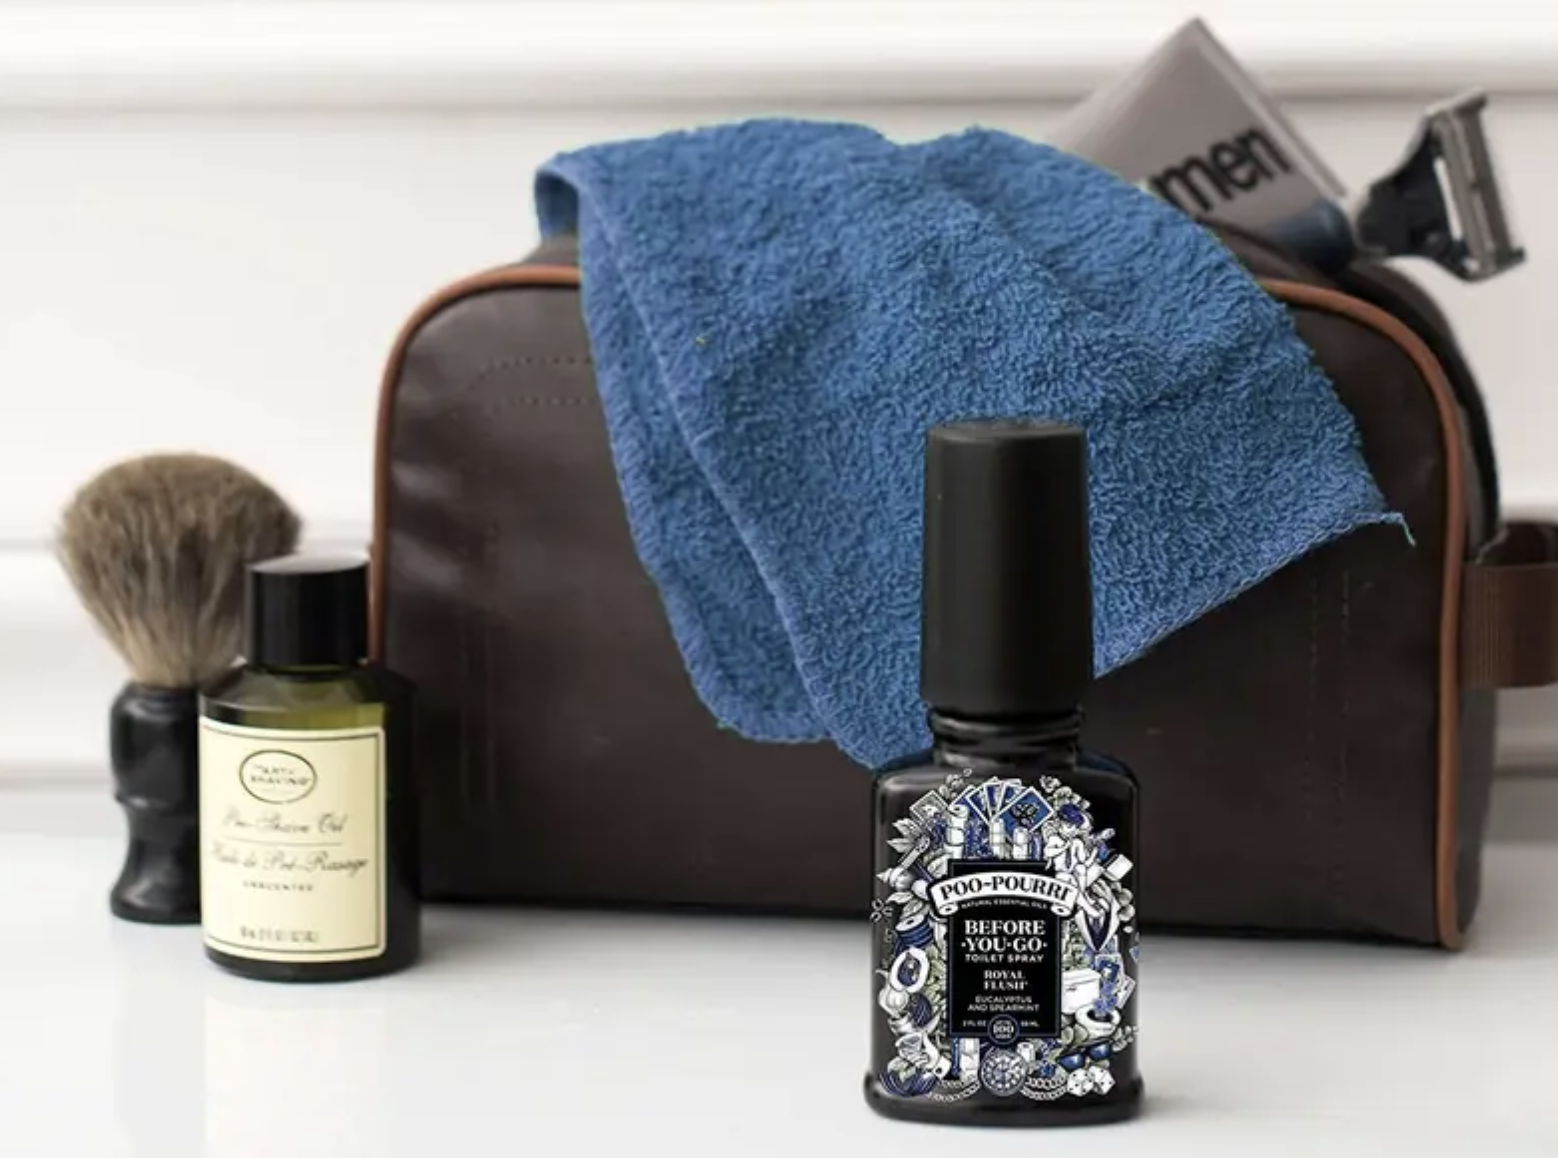 Bottle of black Poo-Pourri on a bathroom counter with a grooming kit